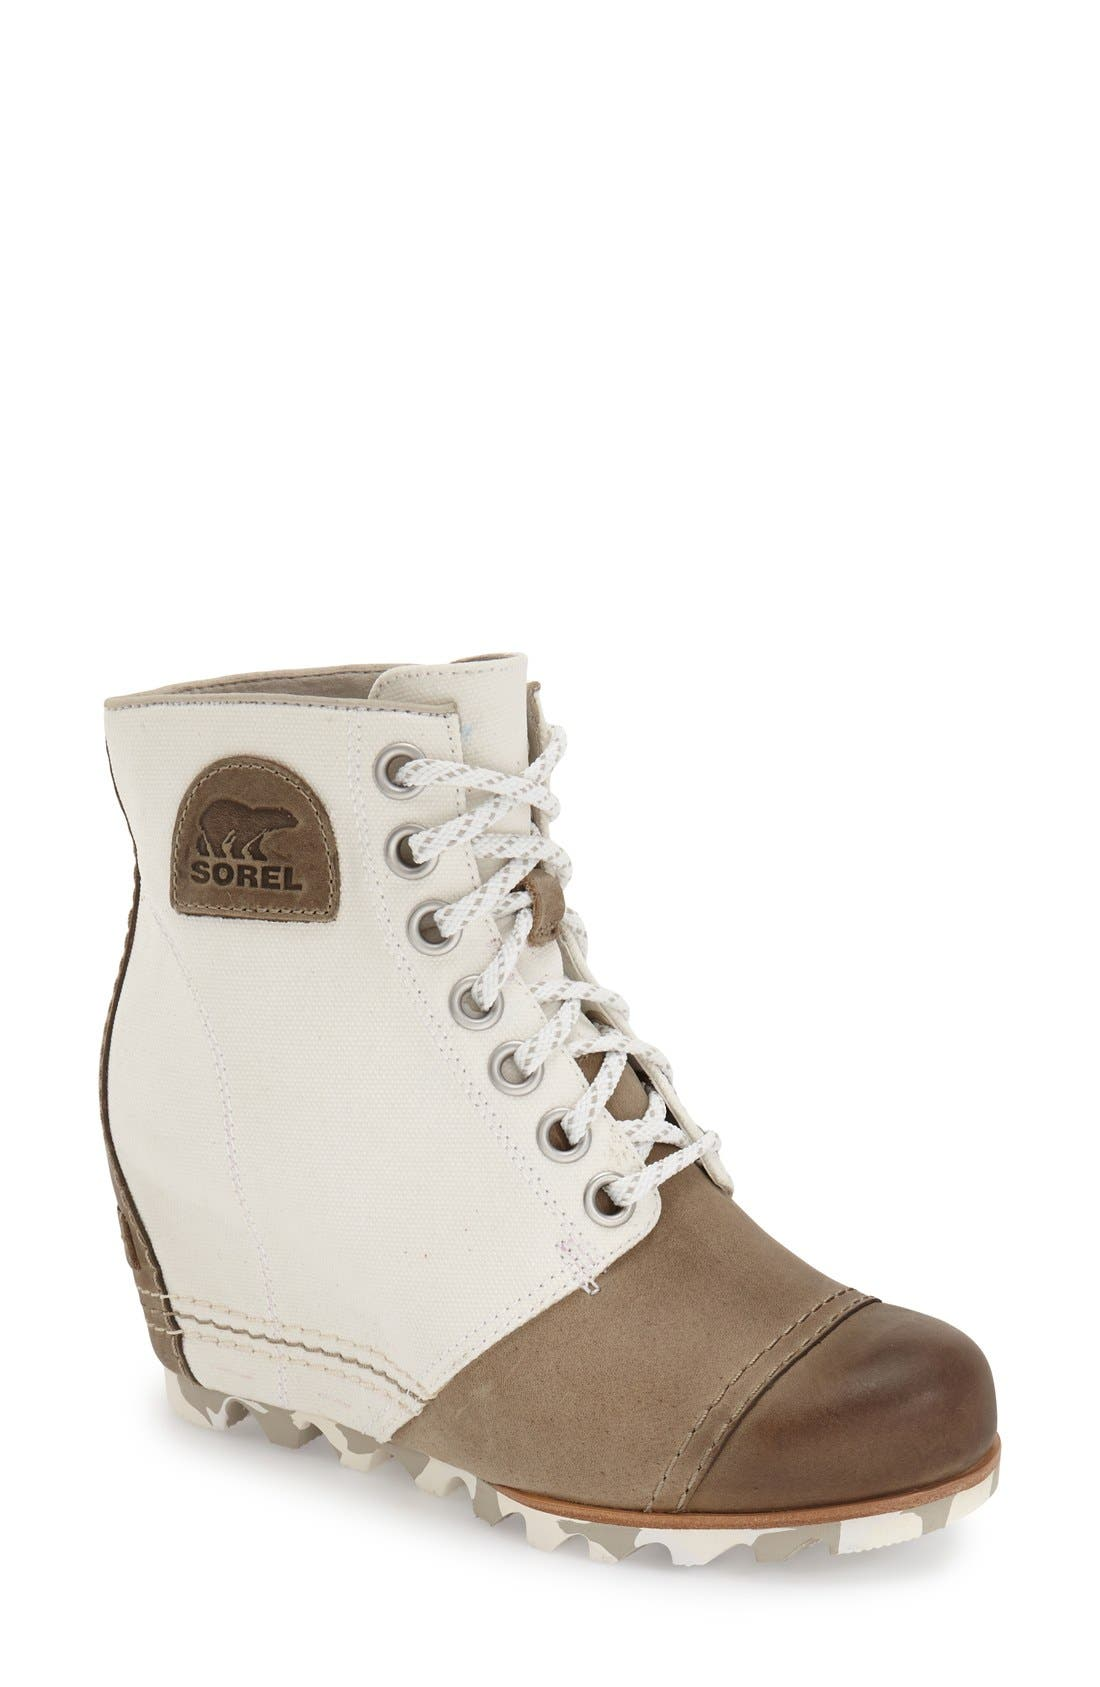 Alternate Image 1 Selected - SOREL '1964 Premium Canvas' Waterproof Wedge Bootie (Women)